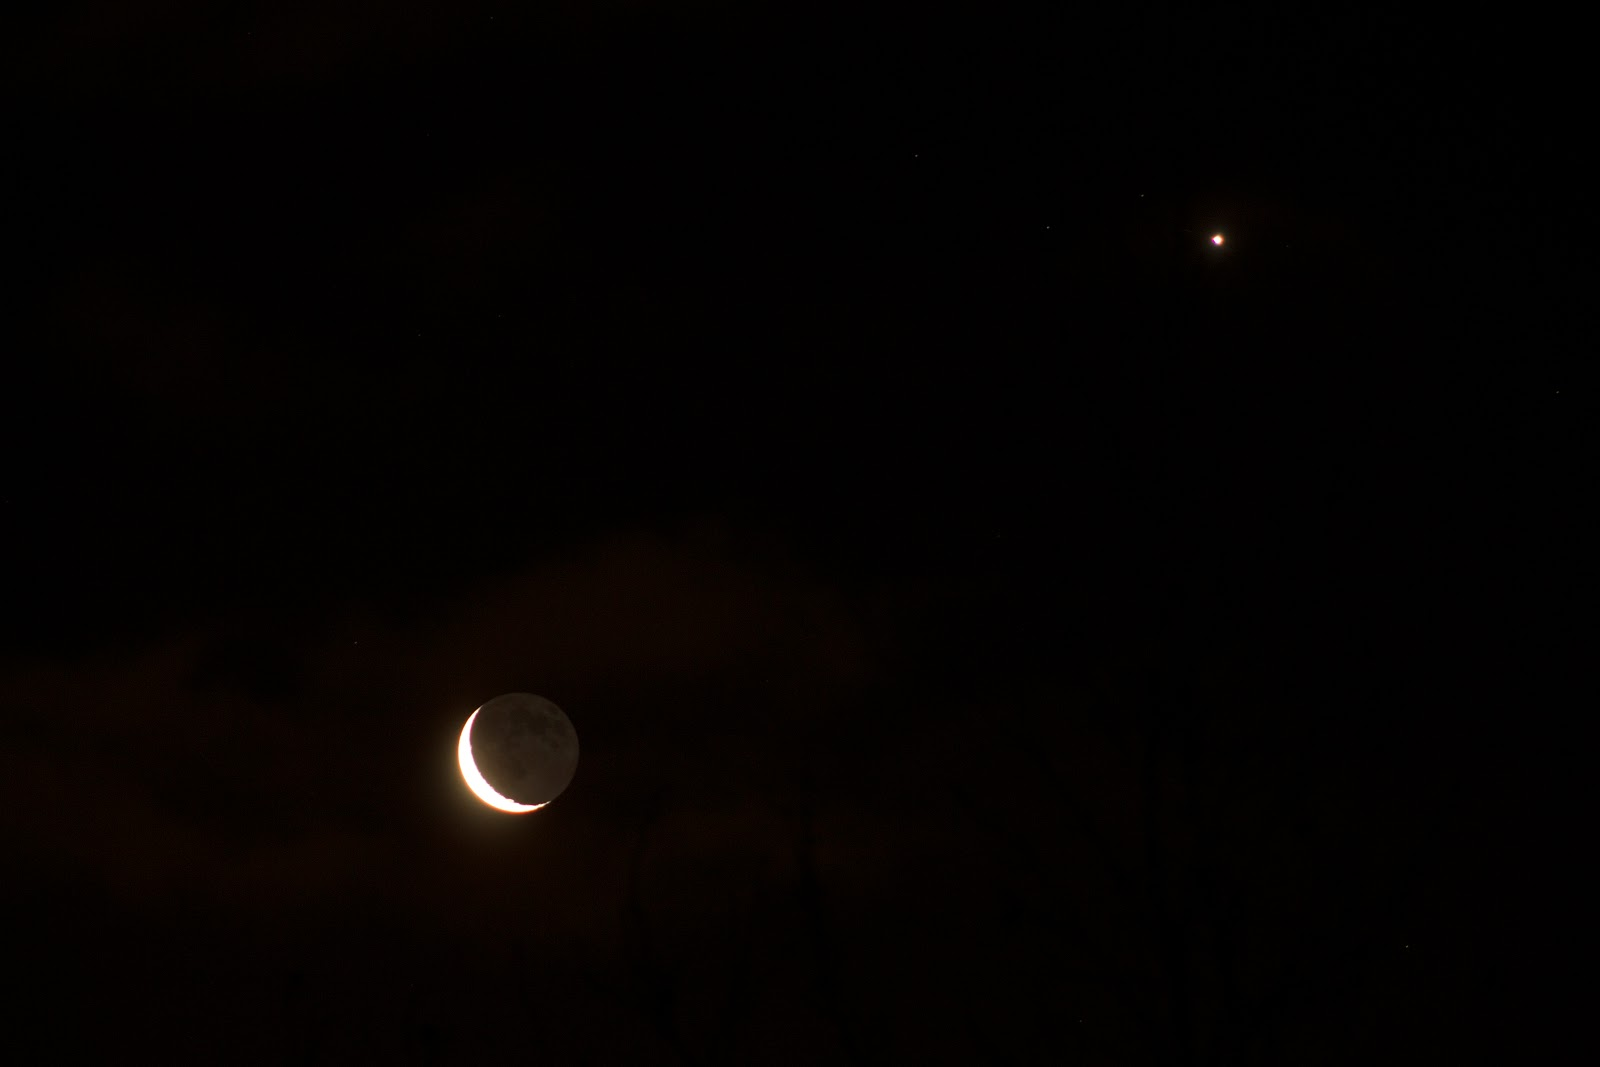 crescent moon earthshine conjunction with venus